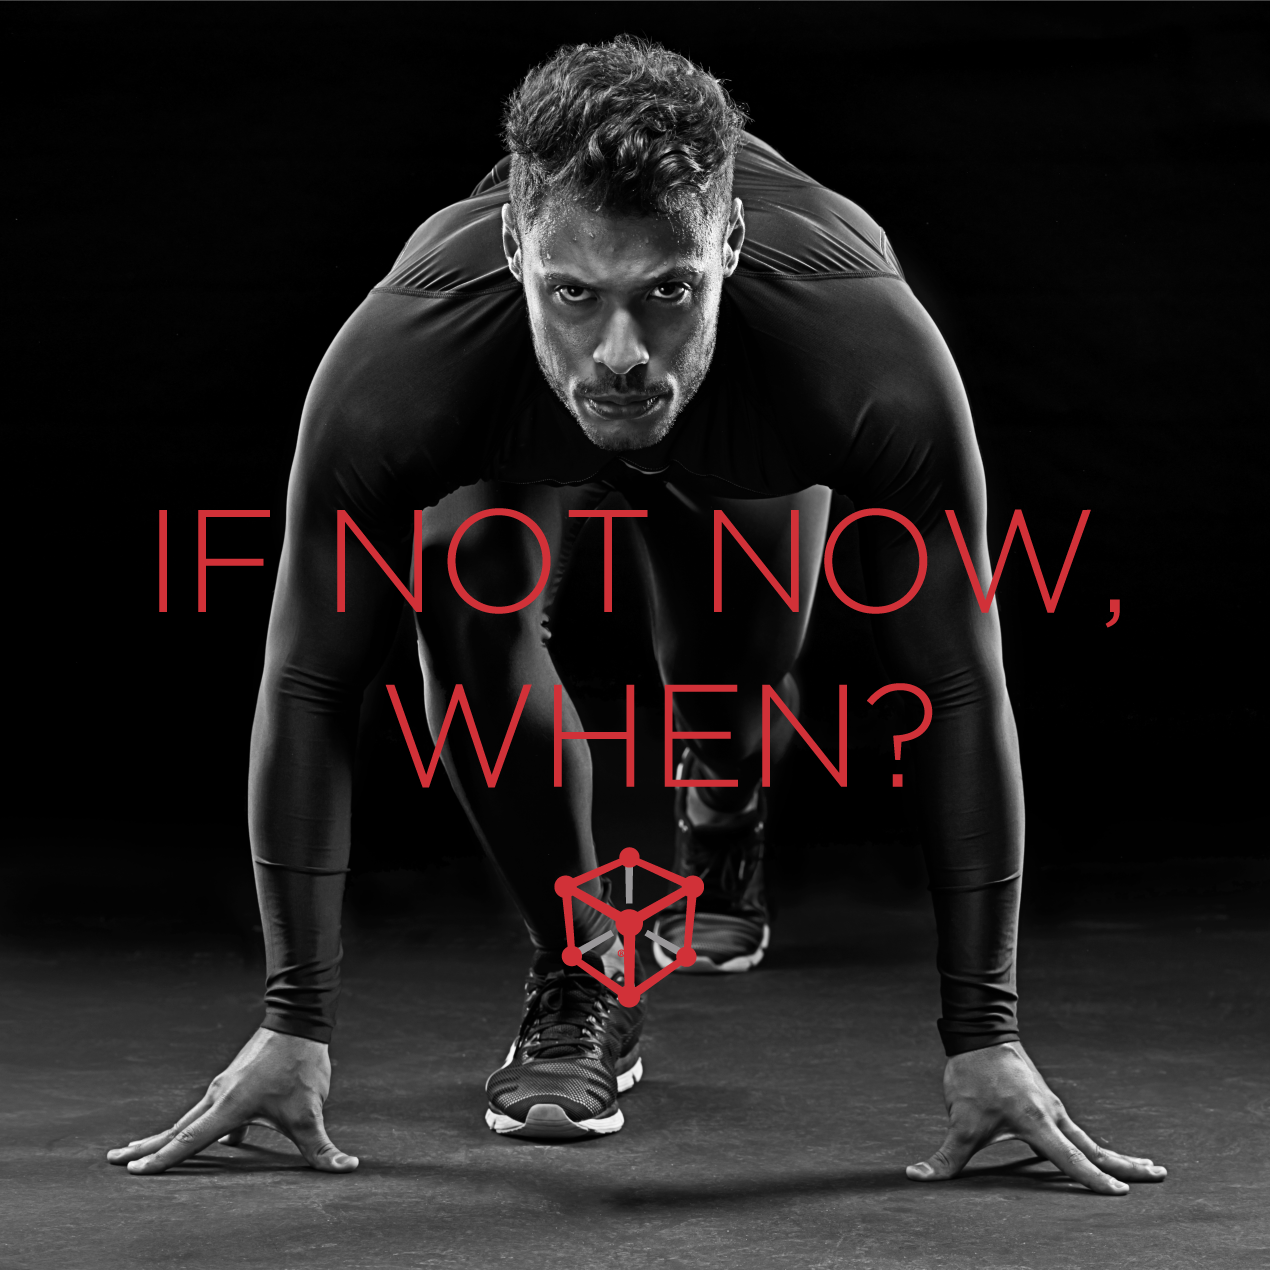 if not now, when? motivation from kubex gym